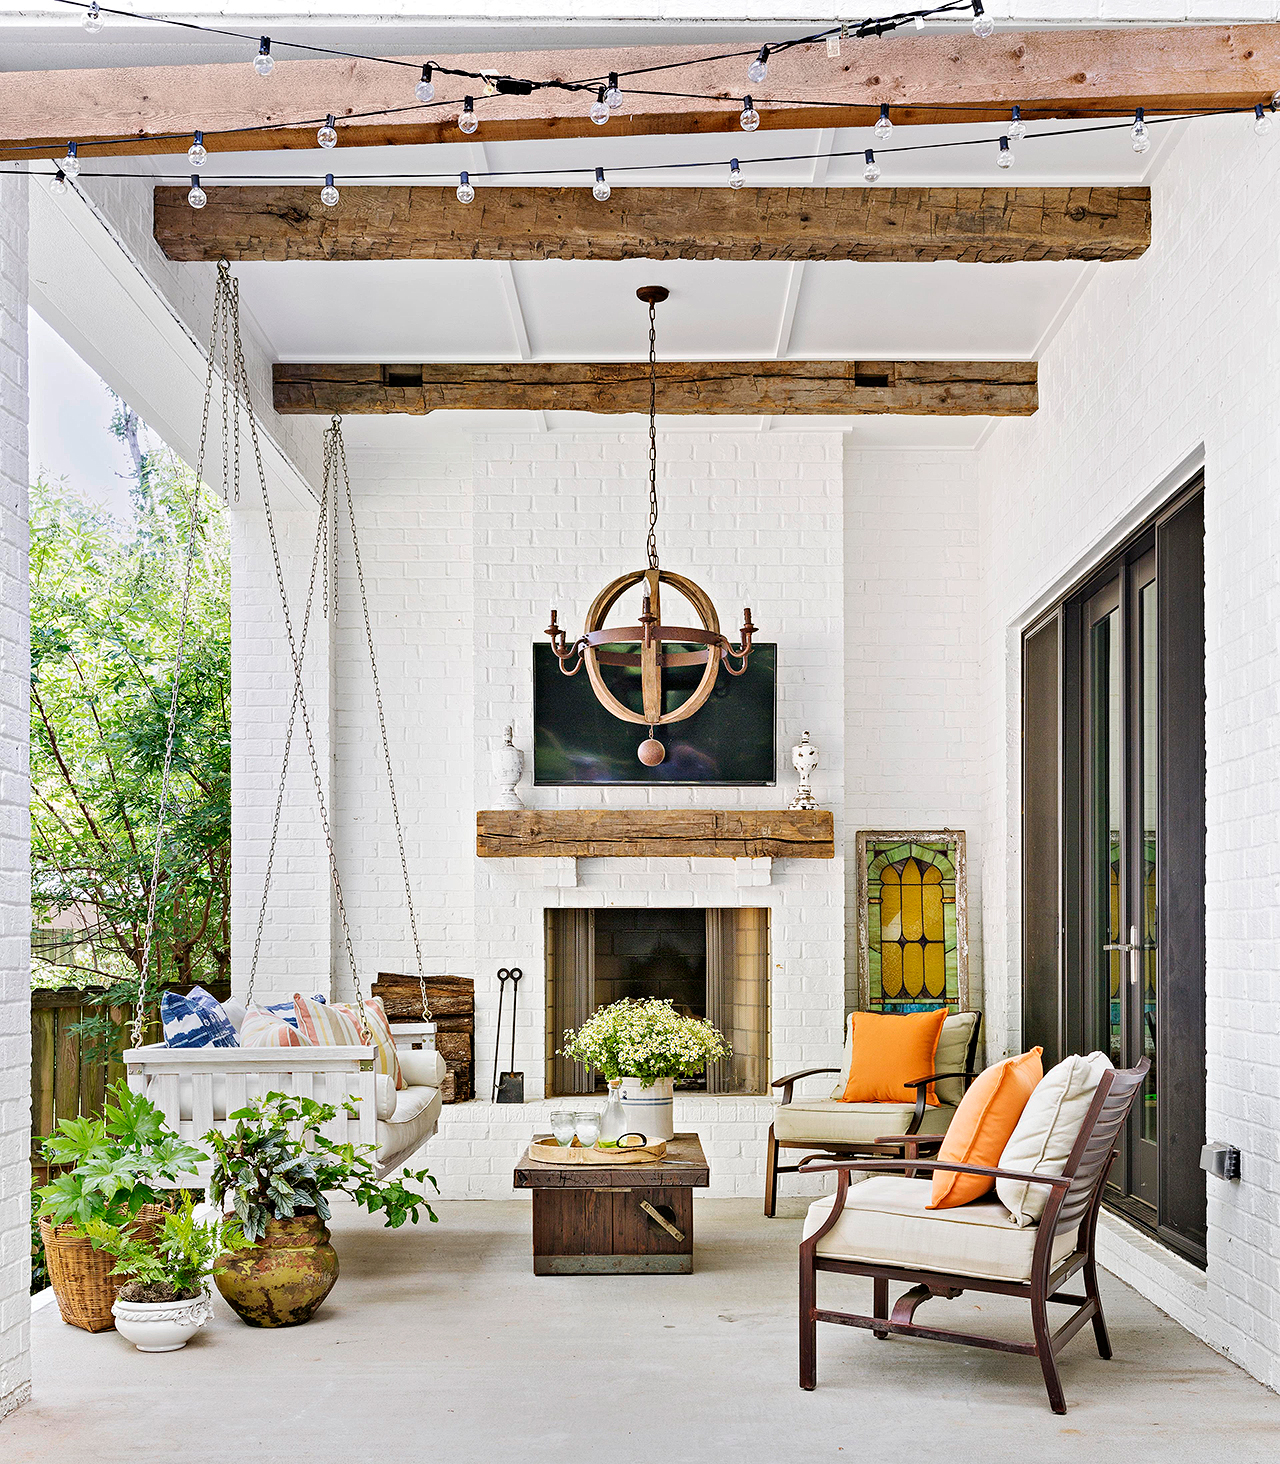 patio area with swing and rustic elements